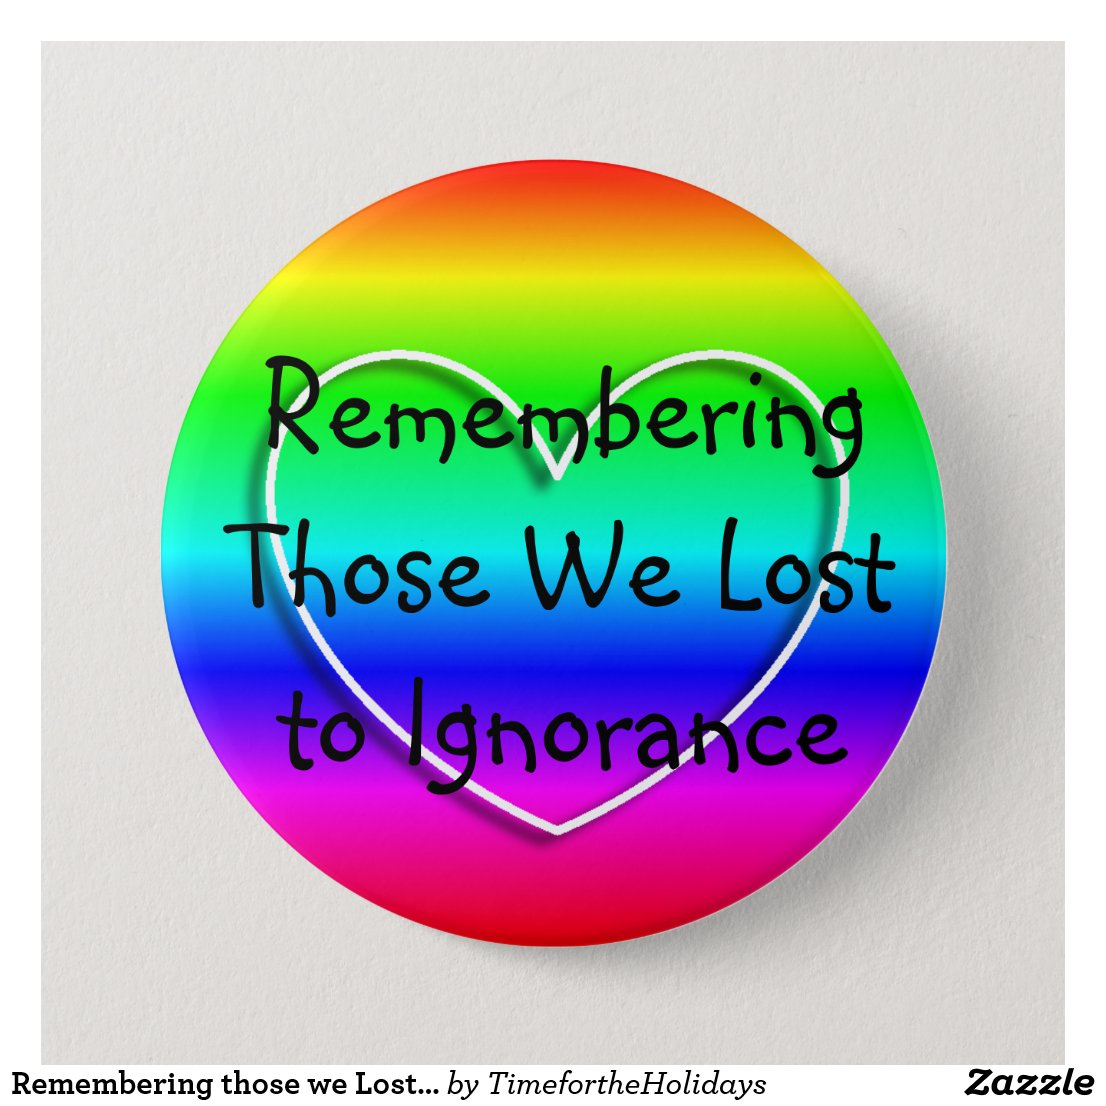 Remembering those we Lost to Ignorance